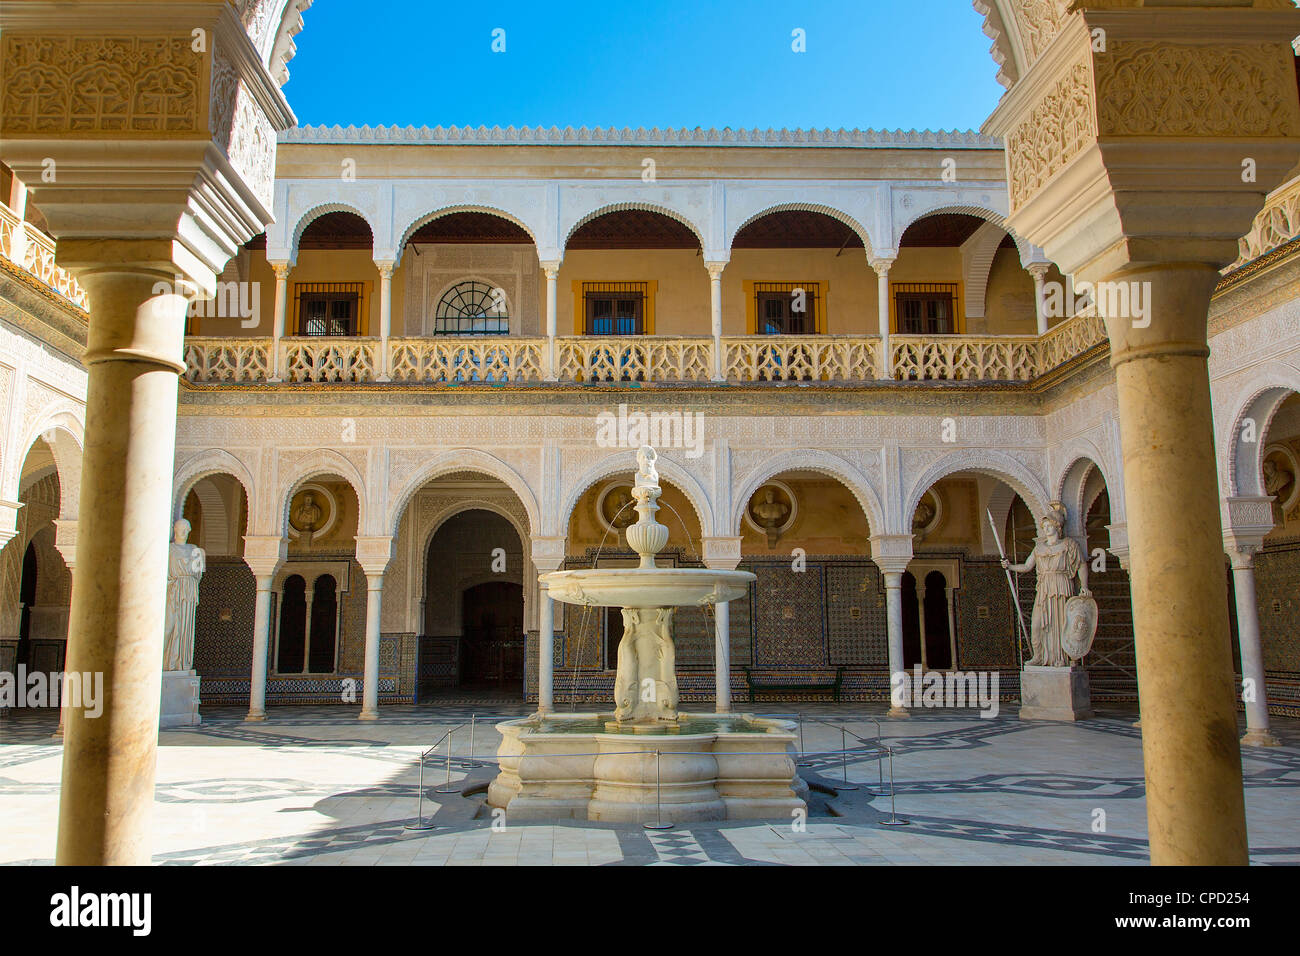 Europe, Spain Andalusia, Sevilla, Patio in Casa de Pilatos - Stock Image